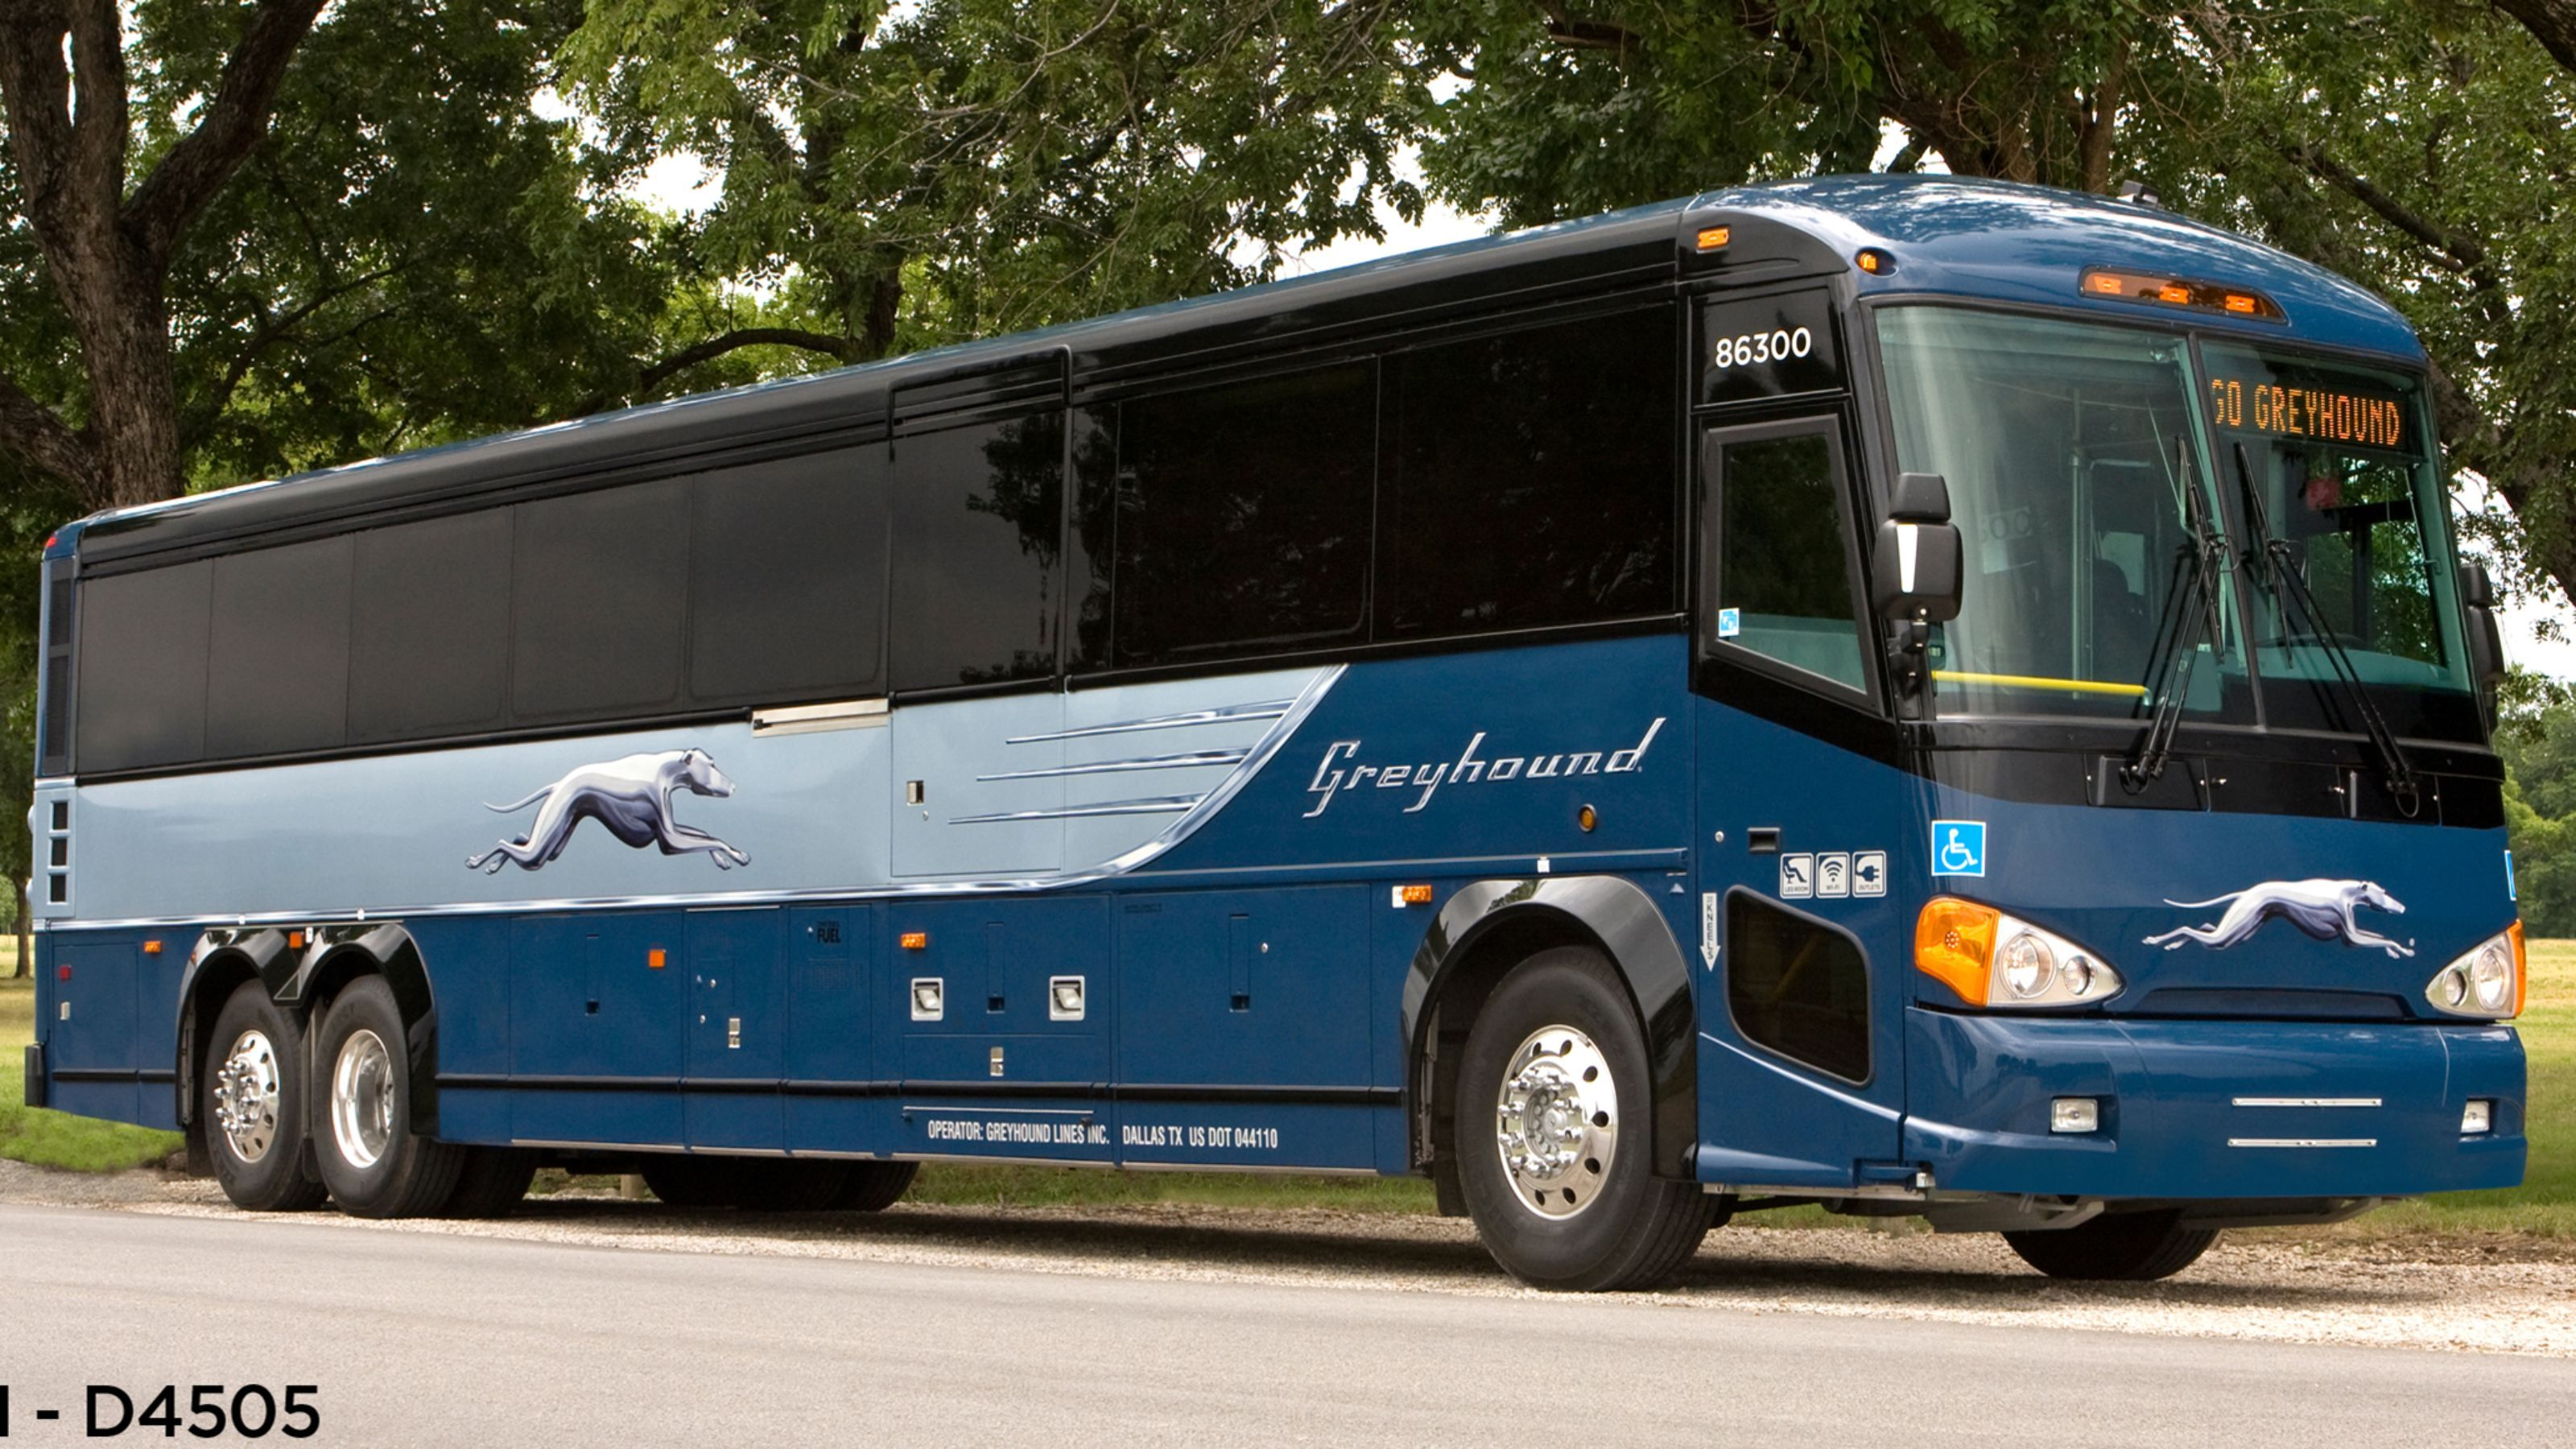 Southfield, MI Greyhound bus station location. Save money and book your bus ticket online today! Tour in Style with Greyhound.